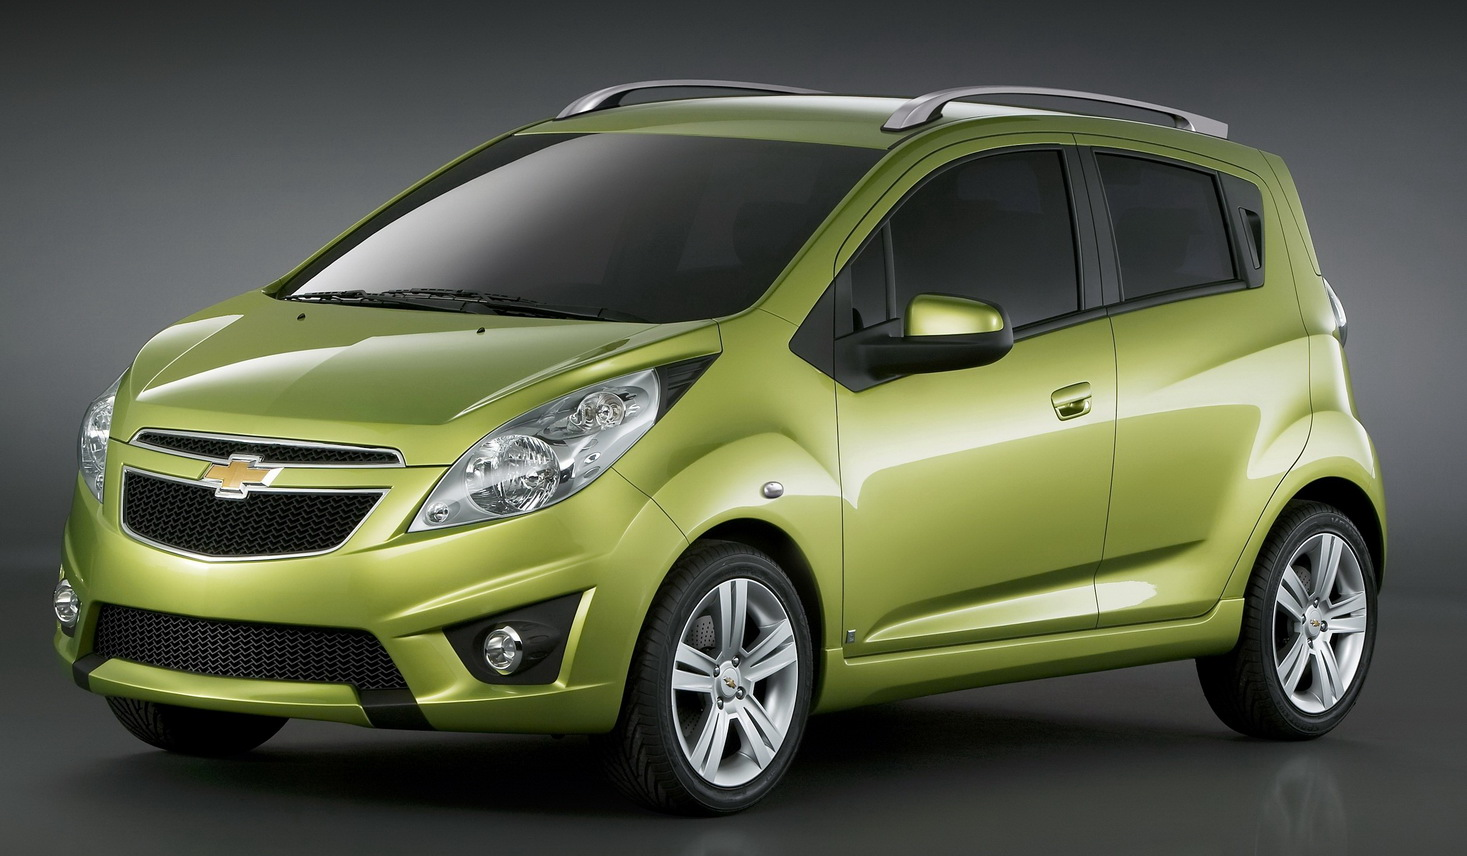 Chevrolet Latest Models >> Latest Car Model Pictures Chevrolet Aveo Car Pictures